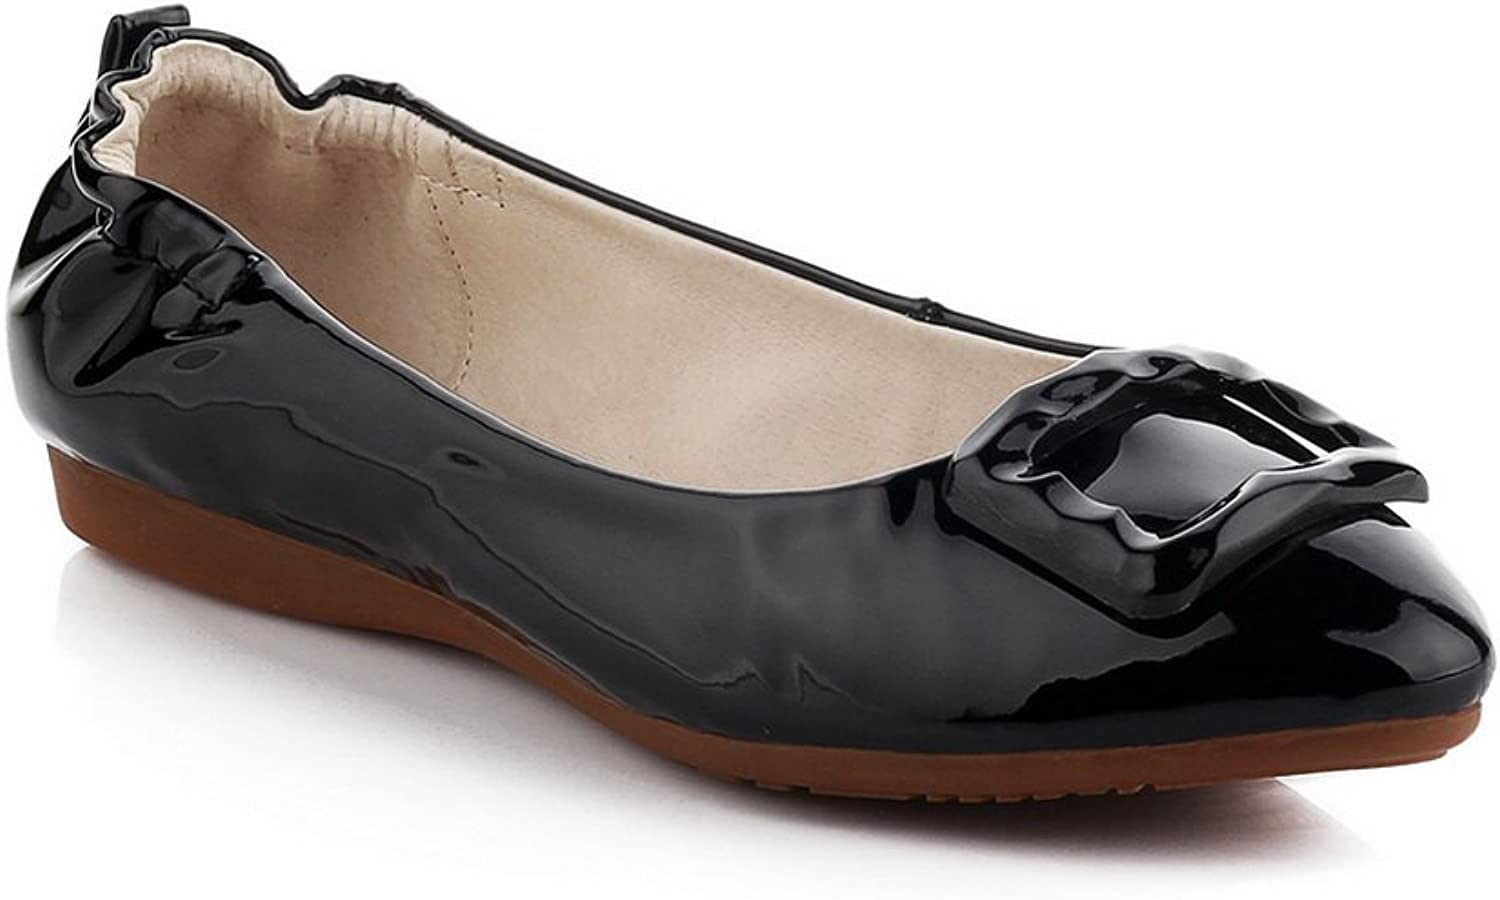 1TO9 Womens Wedges Low-Cut Uppers Patent-Leather Ballet Flats MMS03096